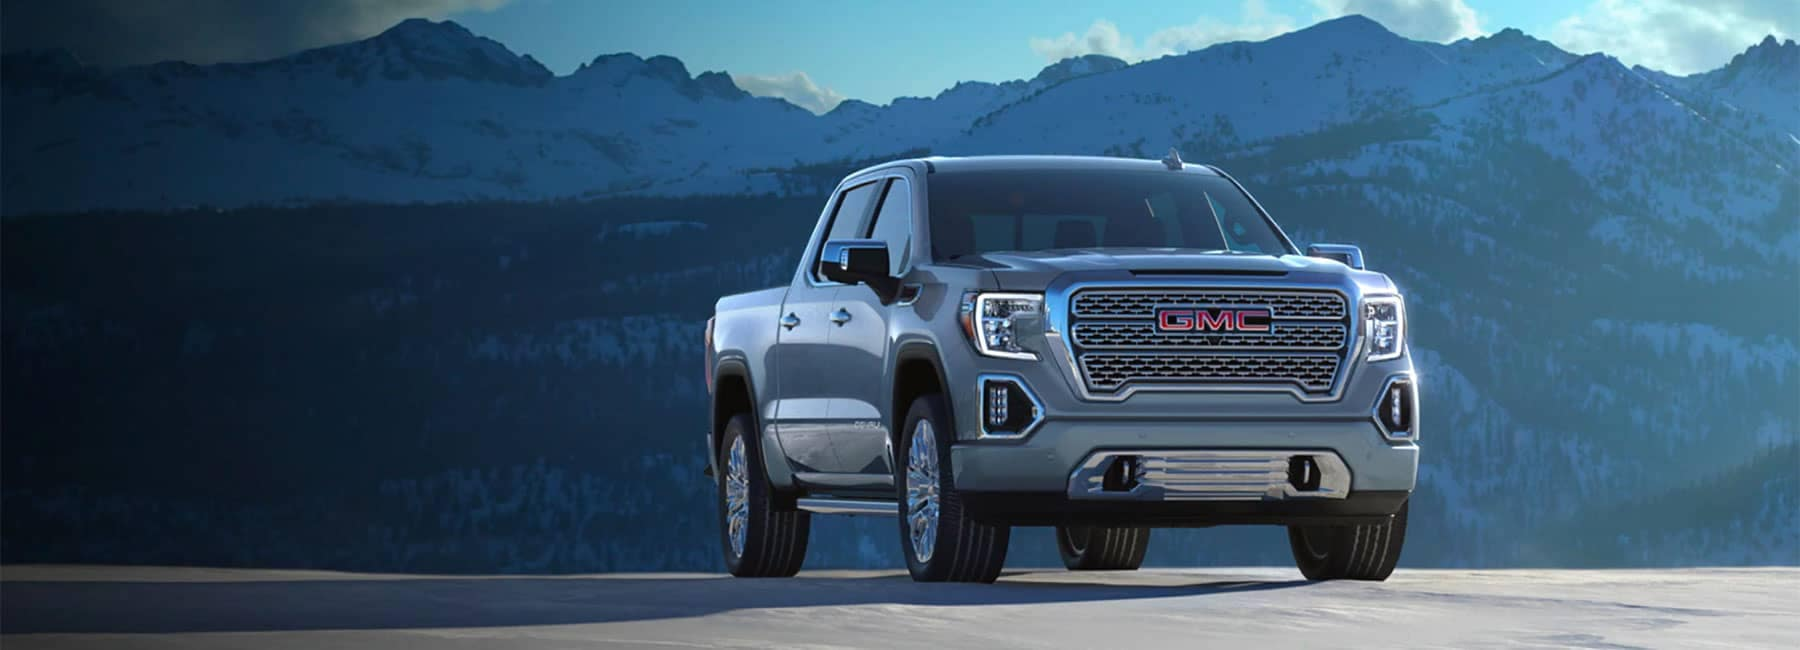 A silver GMC truck parked in front of a mountain range.